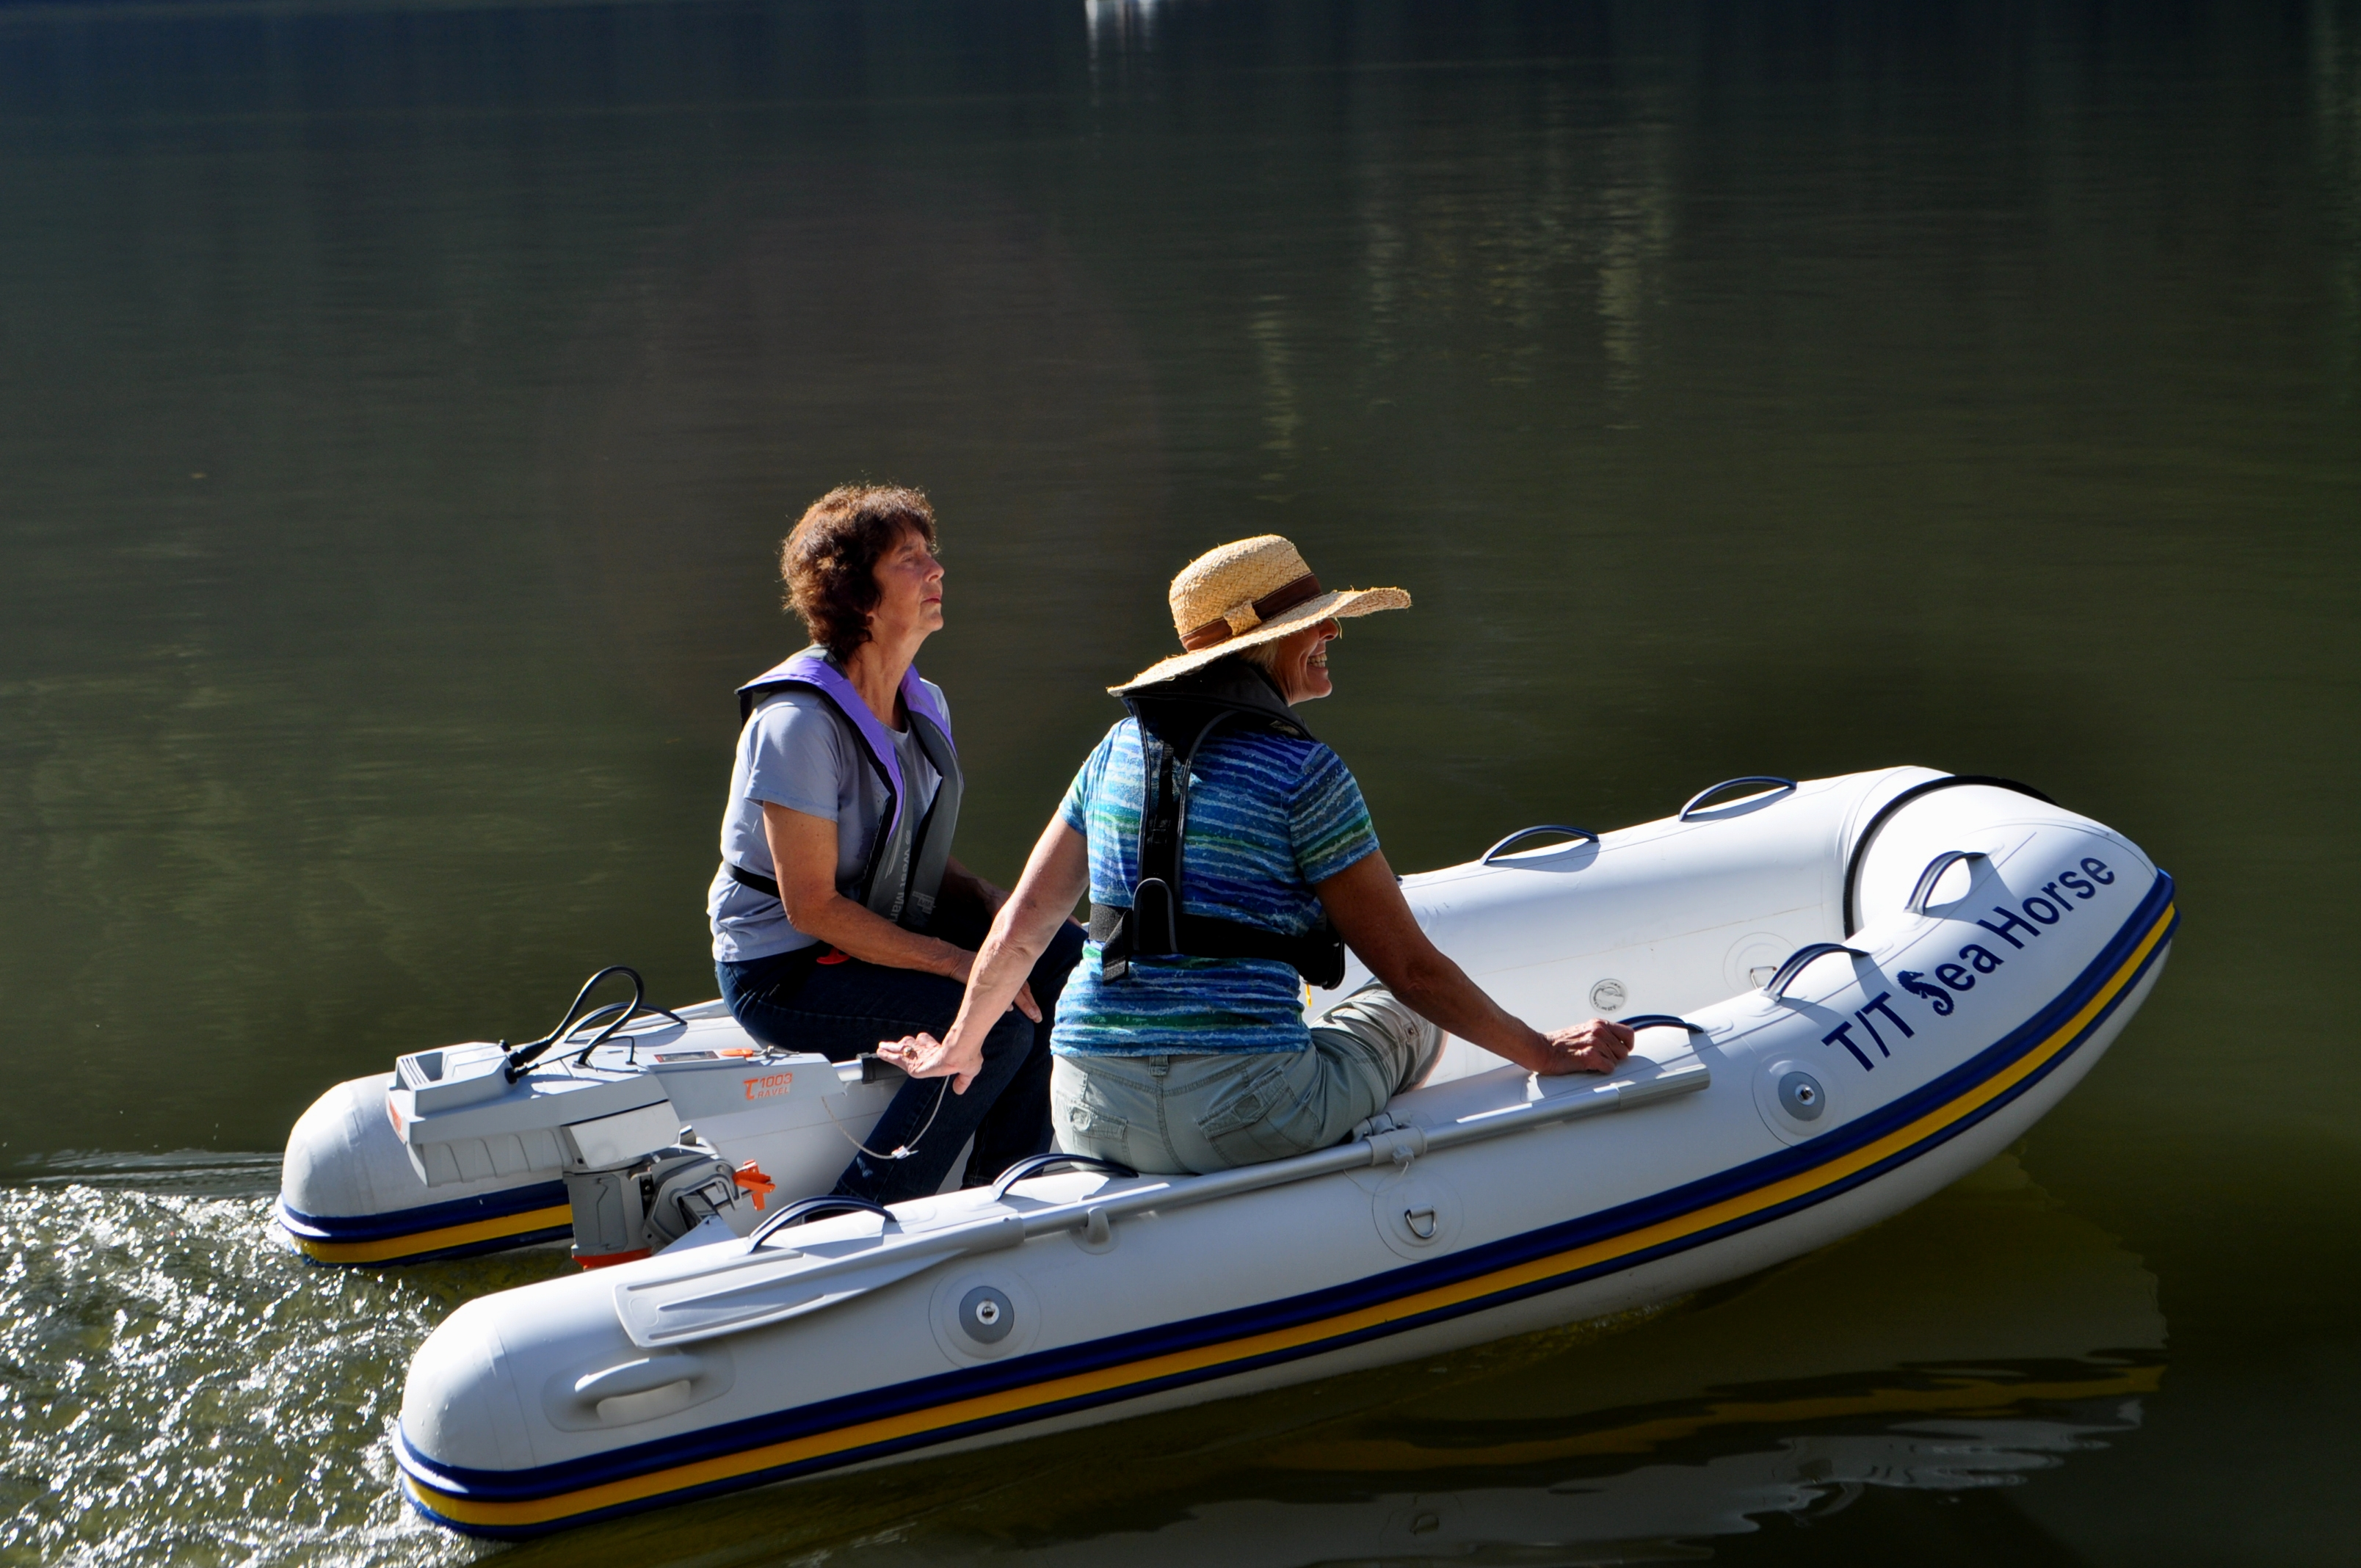 Sally Calkins & Julia exploring with the dinghy in Princess